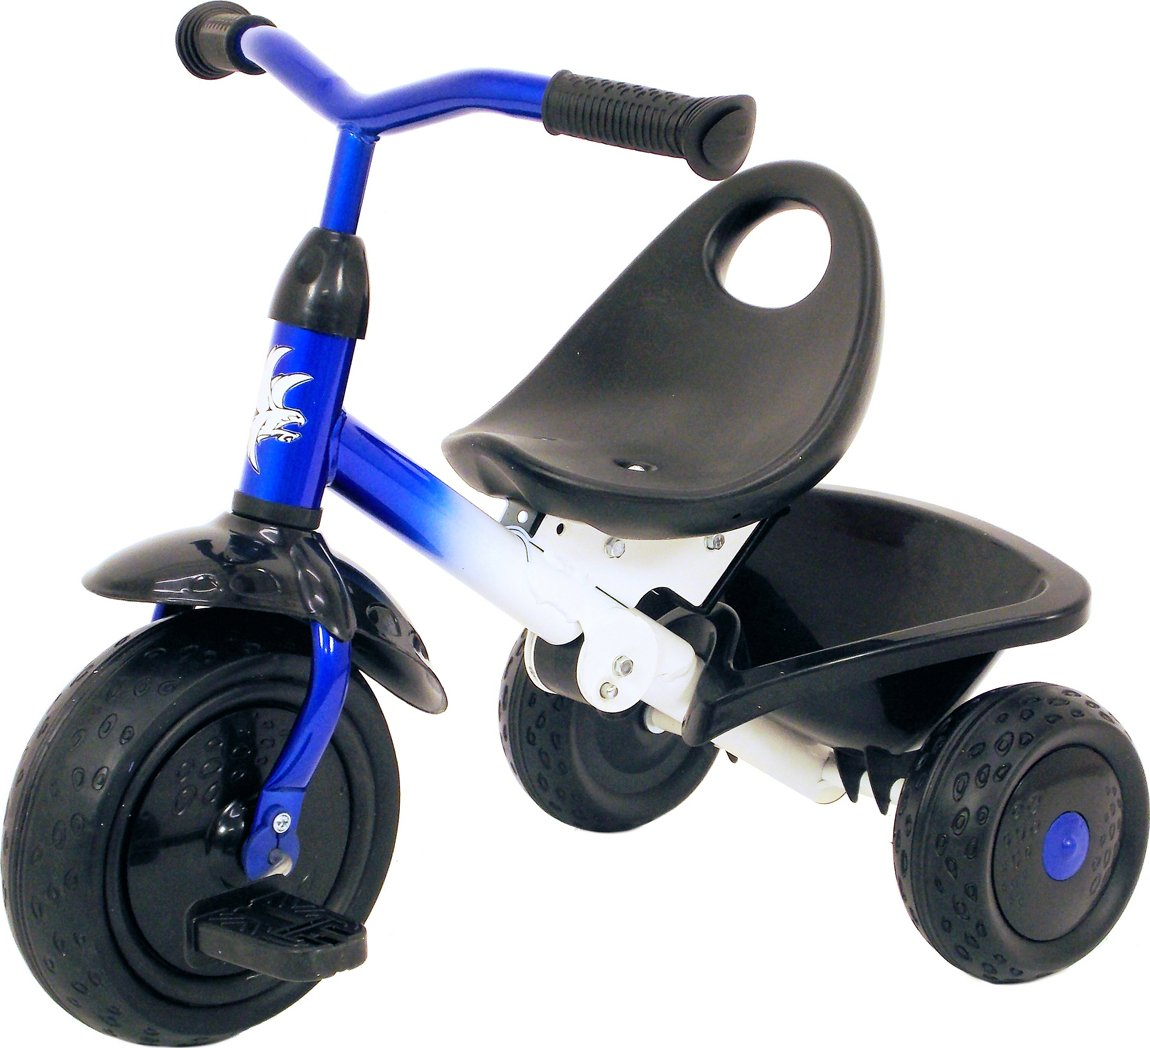 Kettler Kiddi-o by Fold 'n Ride Trike with Adjustable Seat: Falcon, Youth Ages 1.5+ by Kettler